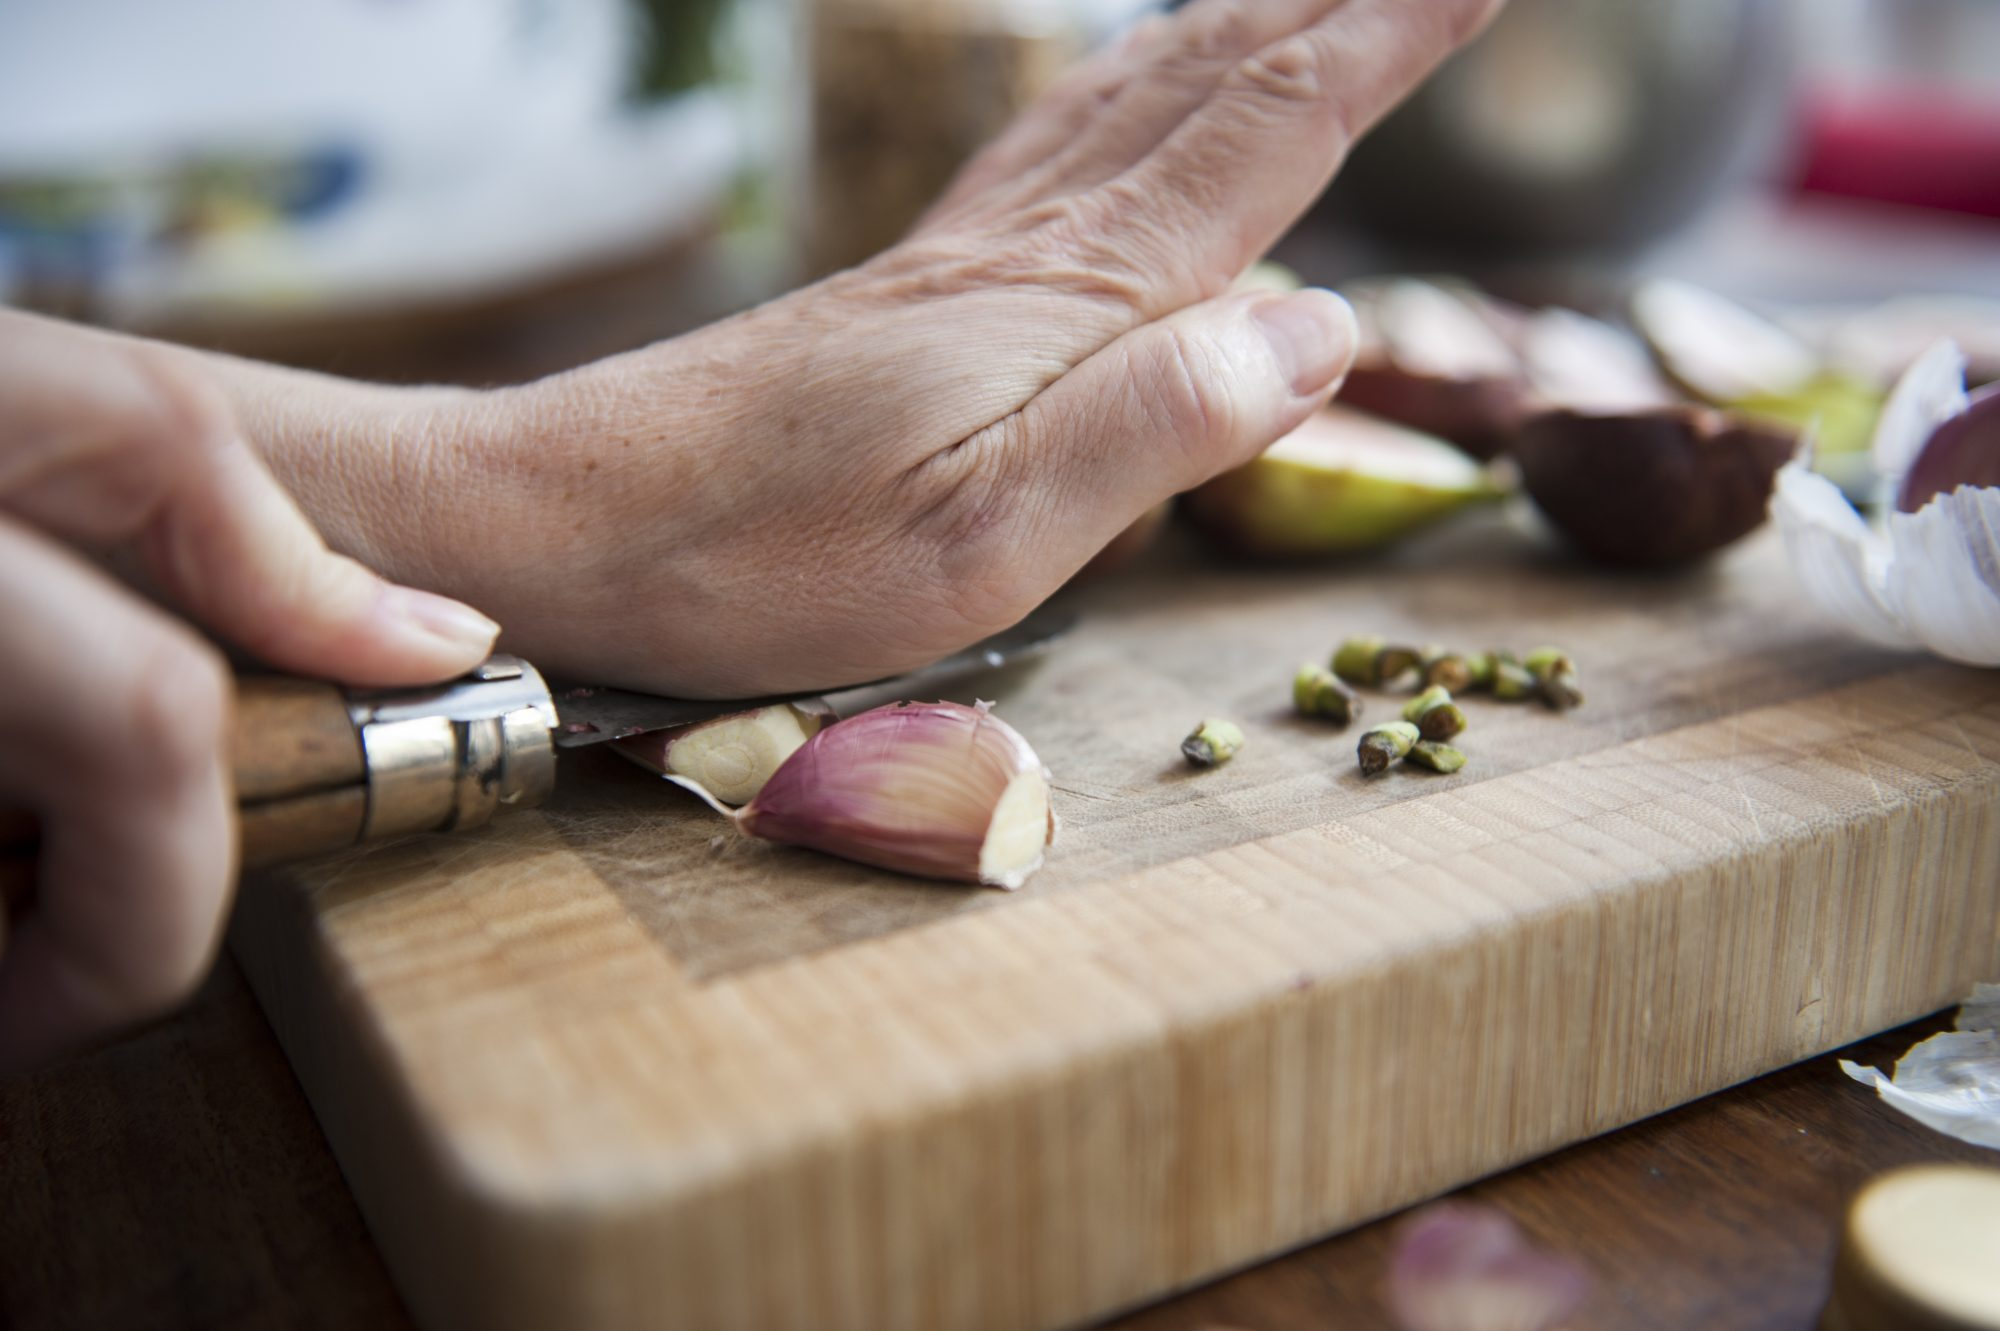 7 Garlic Tricks That'll Get You Off the Jarred Stuff for Good